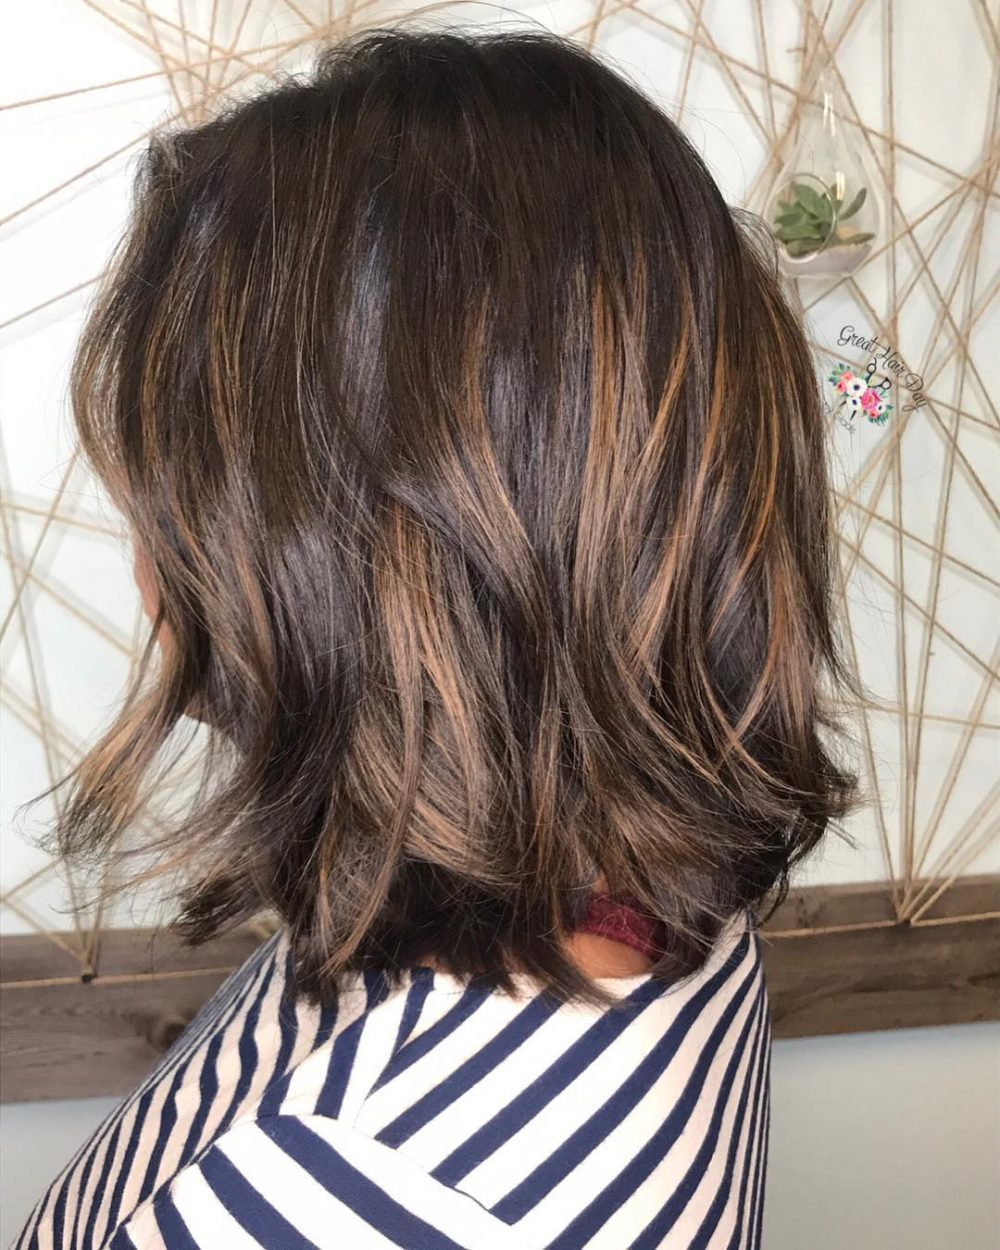 Short Brown Hairstyles With Caramel Highlights Hrotelrehberii